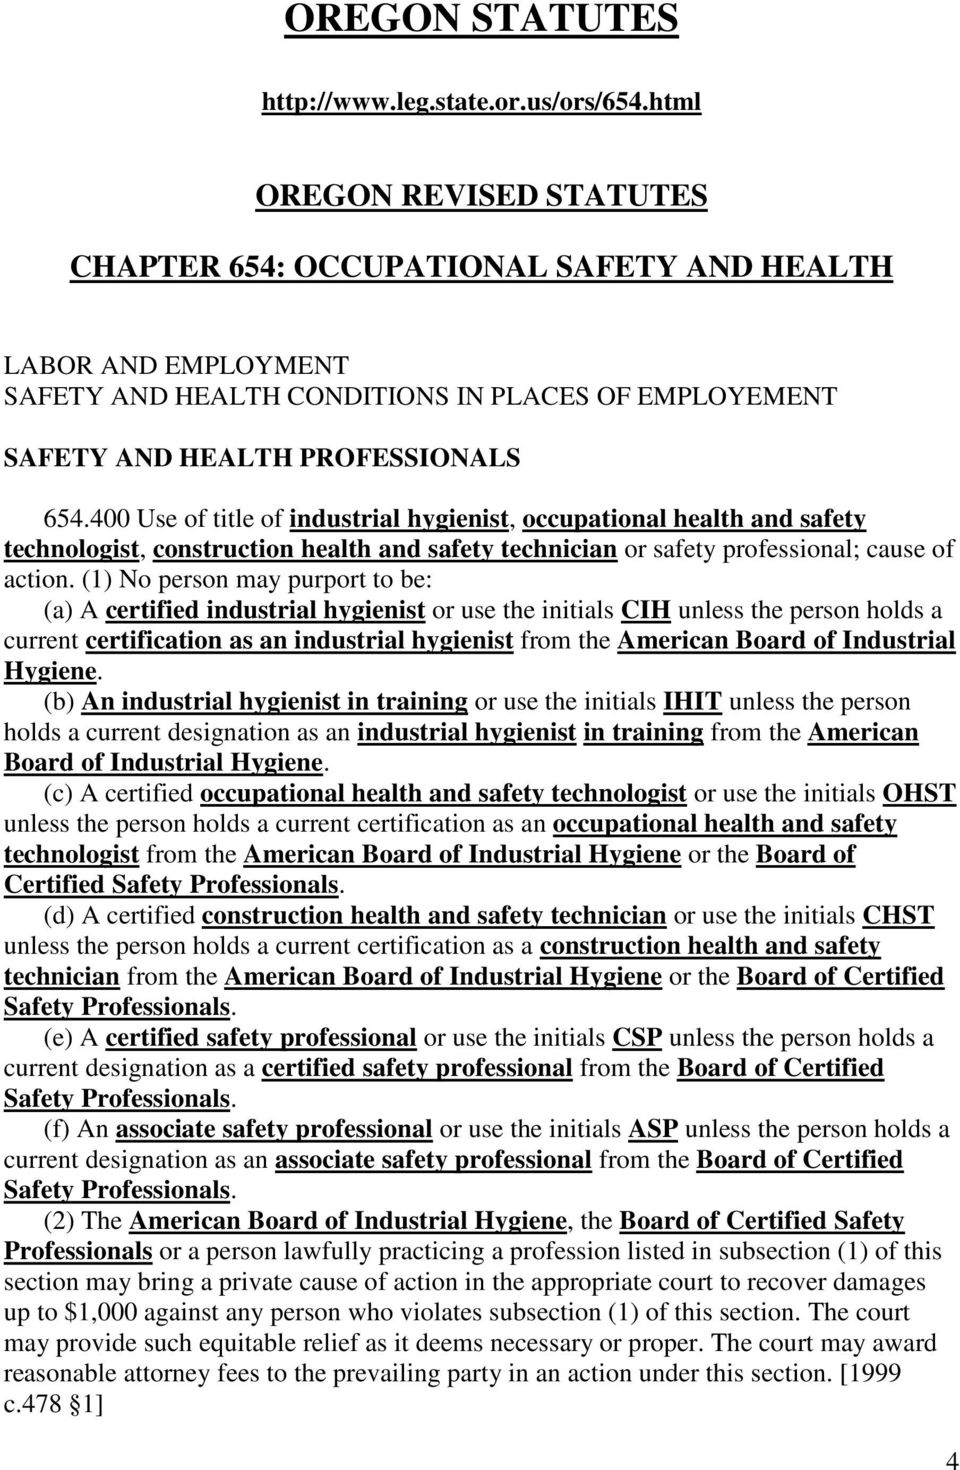 400 Use of title of industrial hygienist, occupational health and safety technologist, construction health and safety technician or safety professional; cause of action.